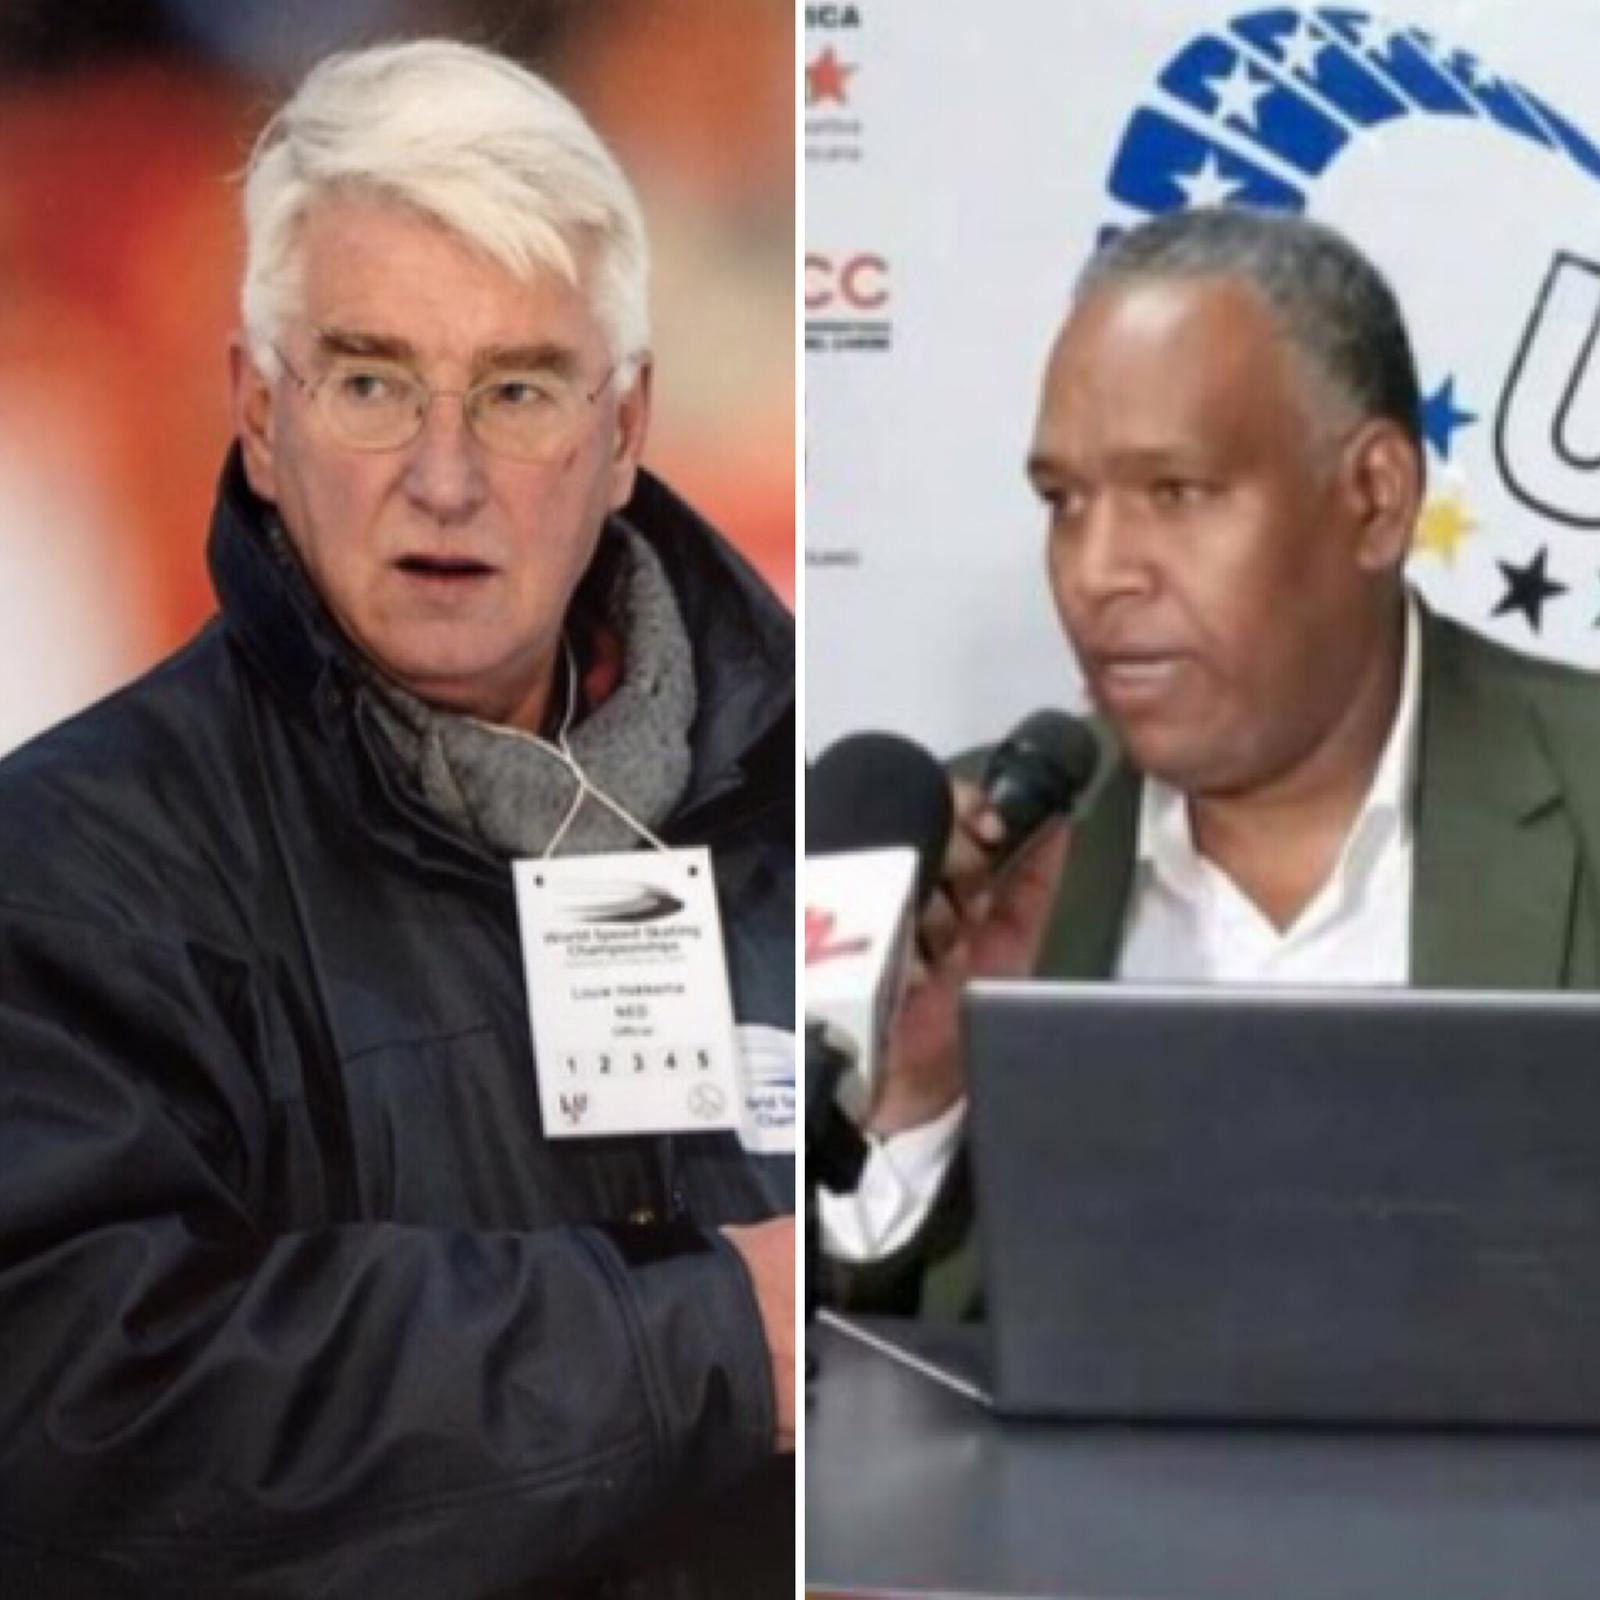 The International University Sports Federation has expressed its condolences following the passing away of Louw Hekkema, left, and Sandy Rodriguez ©FISU